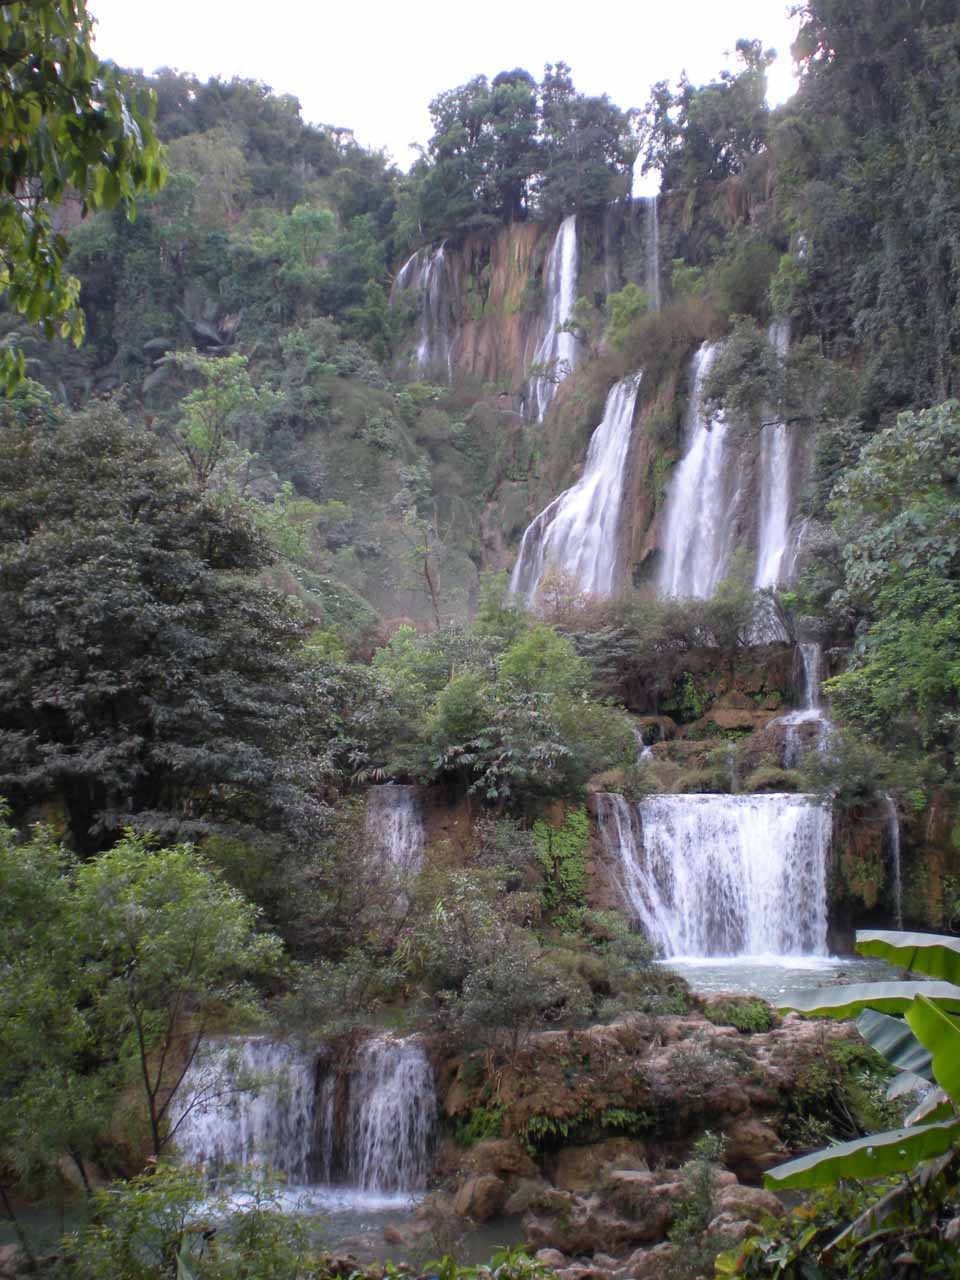 Our last look at the Thi Lo Su Waterfall before heading back to camp